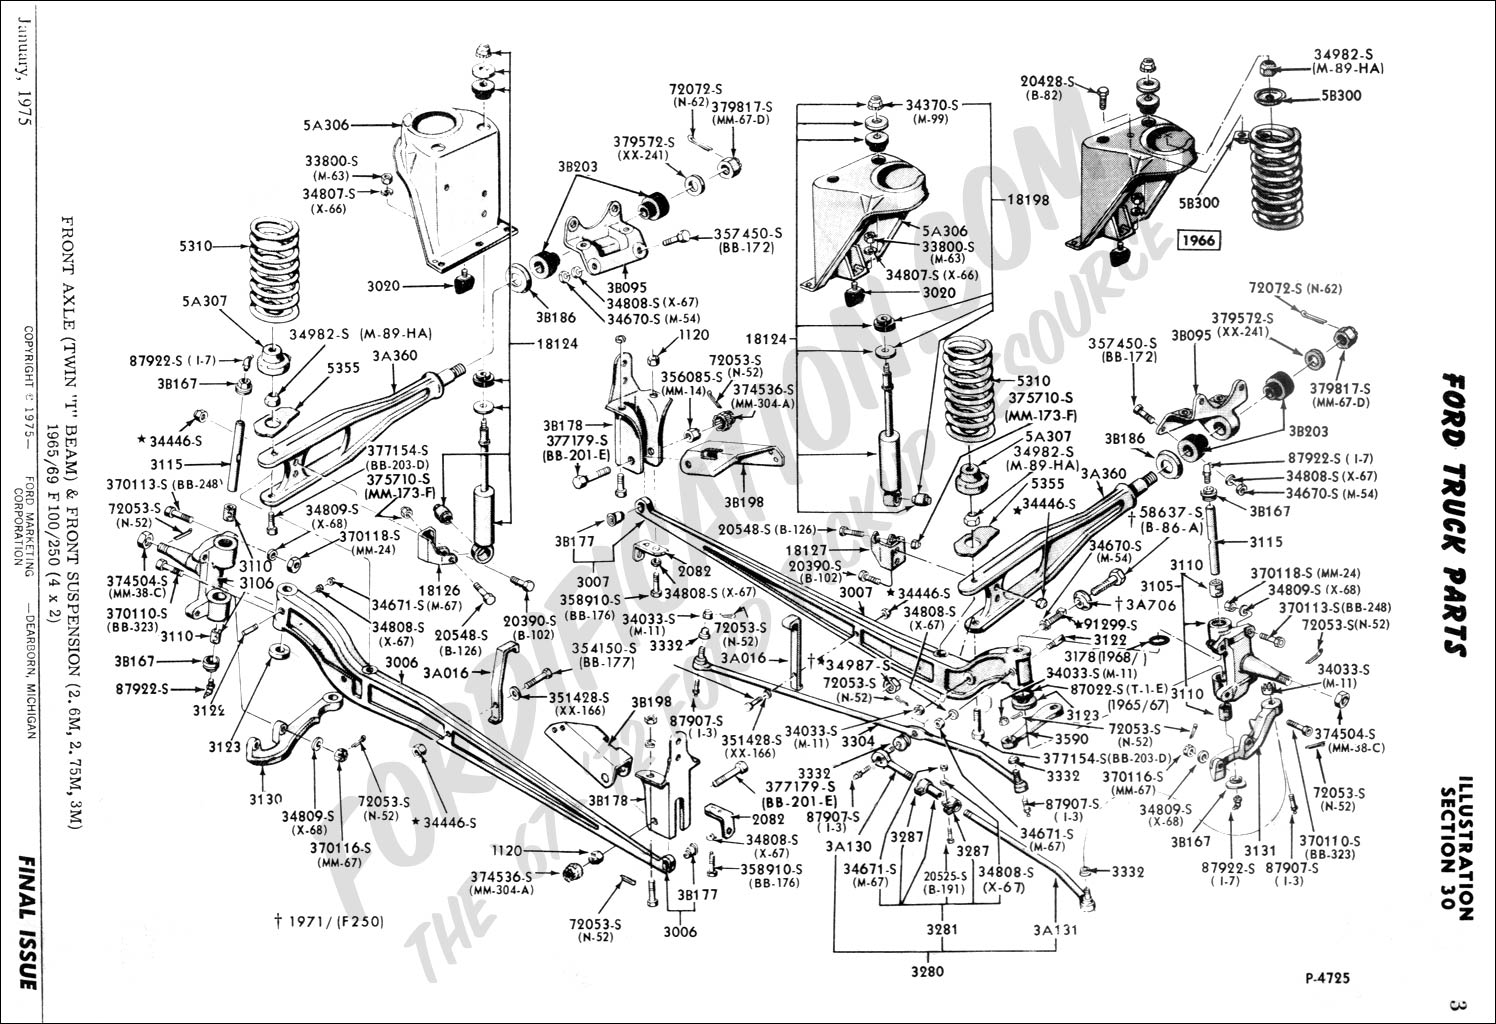 84 ranger headlight switch wiring diagram